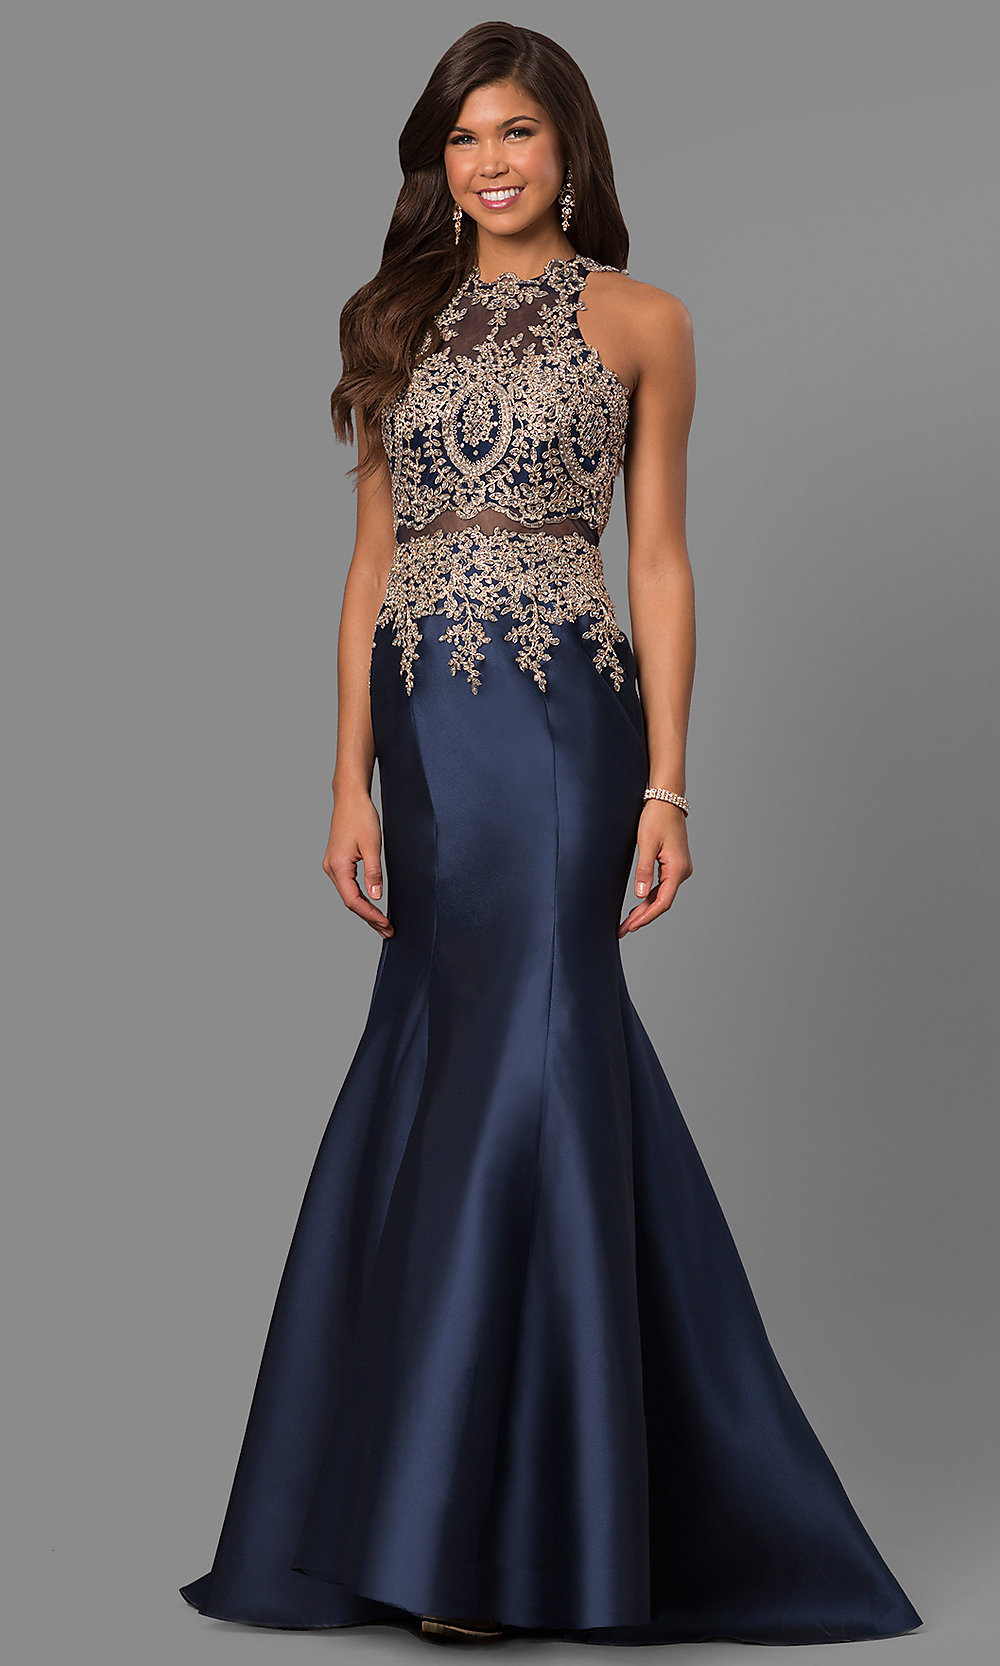 Tulle Prom Dress with Embroidered Halter Bodice | Style